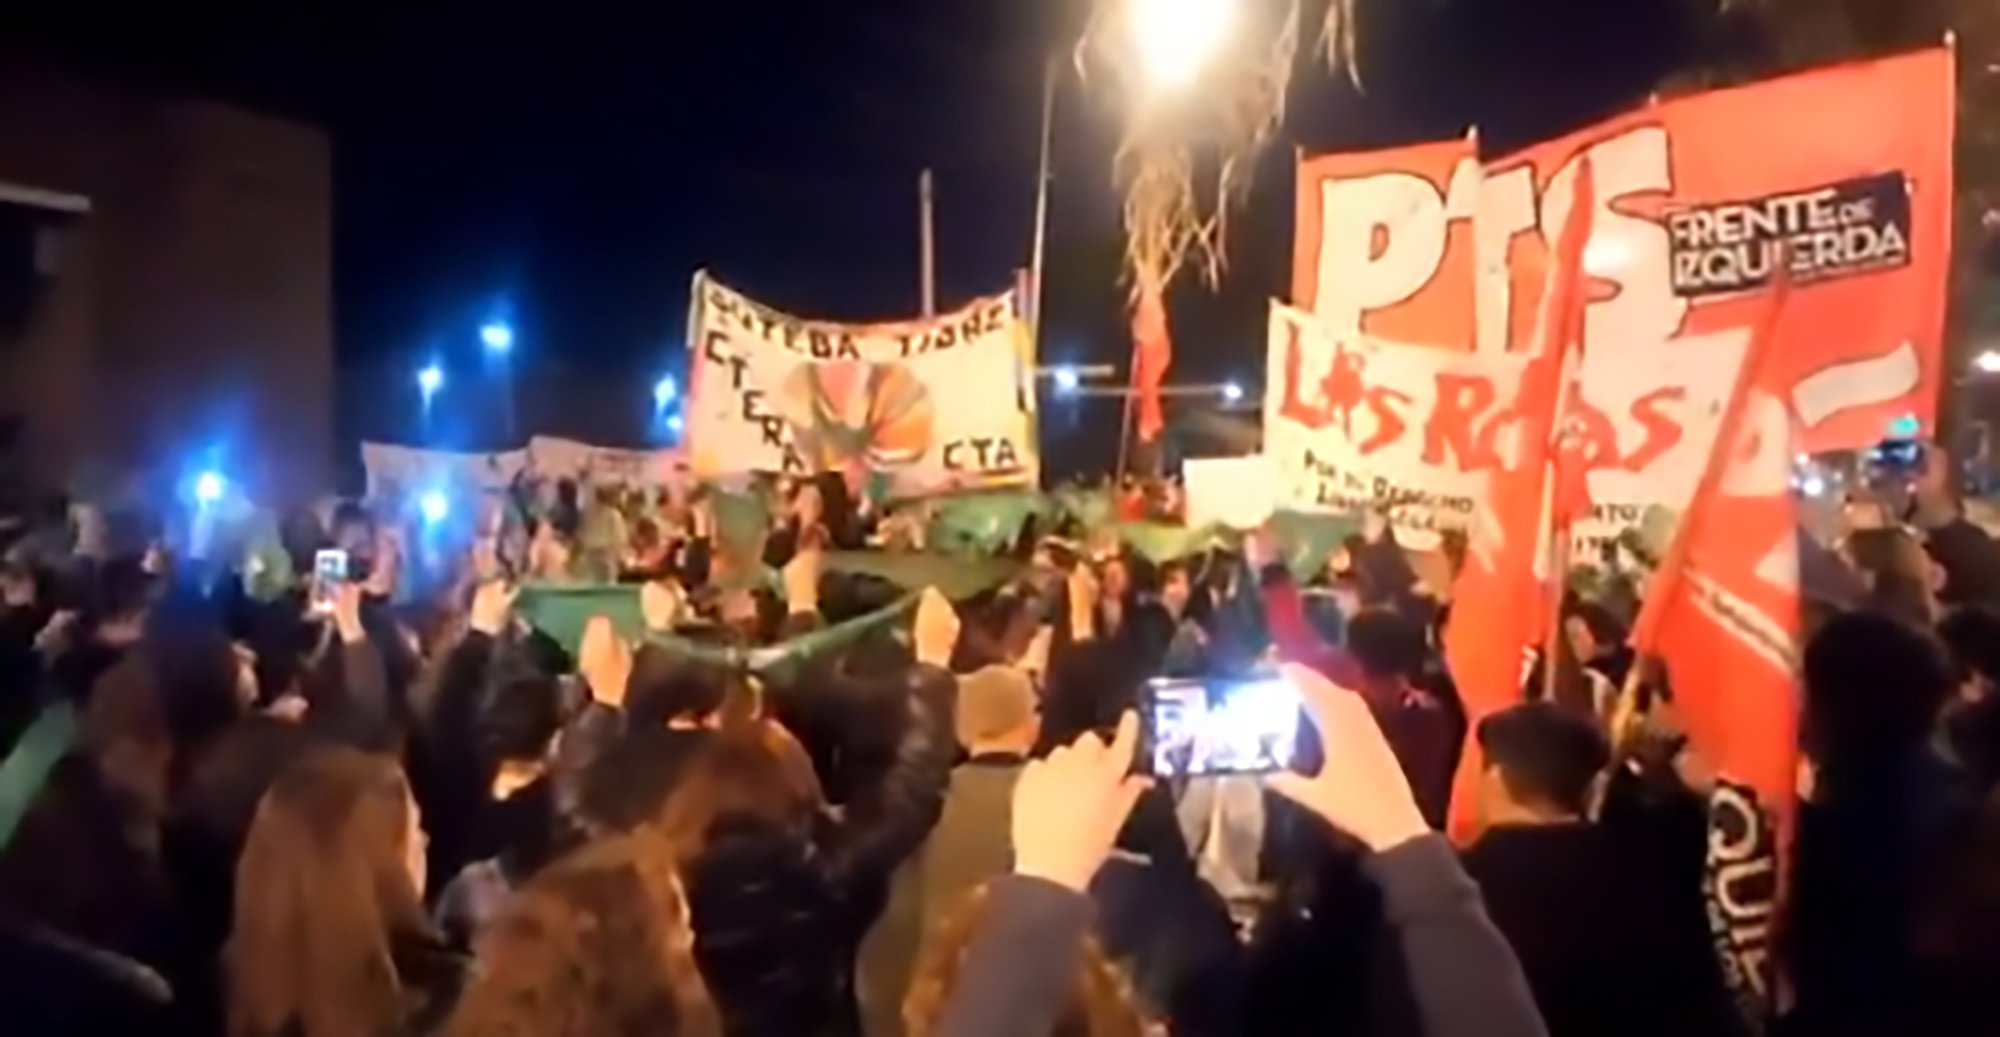 """Pic Shows: Women protested with green symbols for the unsafe abortion; A pregnant woman has died after she inserted parsley stems into her vagina in a botched attempt to induce a miscarriage. The shocking incident occurred in the Argentinian capital Buenos Aires and comes days after the Argentinian Senate rejected a bill to decriminalise abortion in the country. Local media report that the 34-year-old woman, identified as Liz, had placed parsley stems up her vagina in the hopes of inducing a miscarriage. She was reportedly rushed to the emergency ward of the Pacheco hospital after suffering complications in the DIY operation and doctors removed her uterus after it became infected. The victim, mother to a two-year-old son, was then transferred to the emergency unit of another hospital but despite the doctors' best efforts the woman could not be saved and her death has sparked fresh protests over the decriminalisation of abortion in Argentina. Ana Paula Fagioli, spokeswoman for the health professionals network Decision Right Net, said: """"She went to the hospital with septic shock and parsley stems in her uterus. The uterus is sterile, it does not have germs. When a stem is introduced into the uterus the germs from the parsley go inside and increase the mount of germs inside the vagina. This causes a serious infection."""" Reports suggest the victim had been taken to the hospital by her mother and was scared of reporting the incident as she could have been jailed for trying to induce a miscarriage. Fagioli added: """"For those who say that legal abortions are expensive for the state, I say that the costs in this case were very high, the surgery to remove the uterus, the night in an intensive care unit, the transfer, the new hospitalisation. """"We knew that this was going to happen and this is the result of the desperation of a poor woman facing this alone."""" Local media report the victim???s mother will look after her two-year-old son. Demonstrations were held outside"""